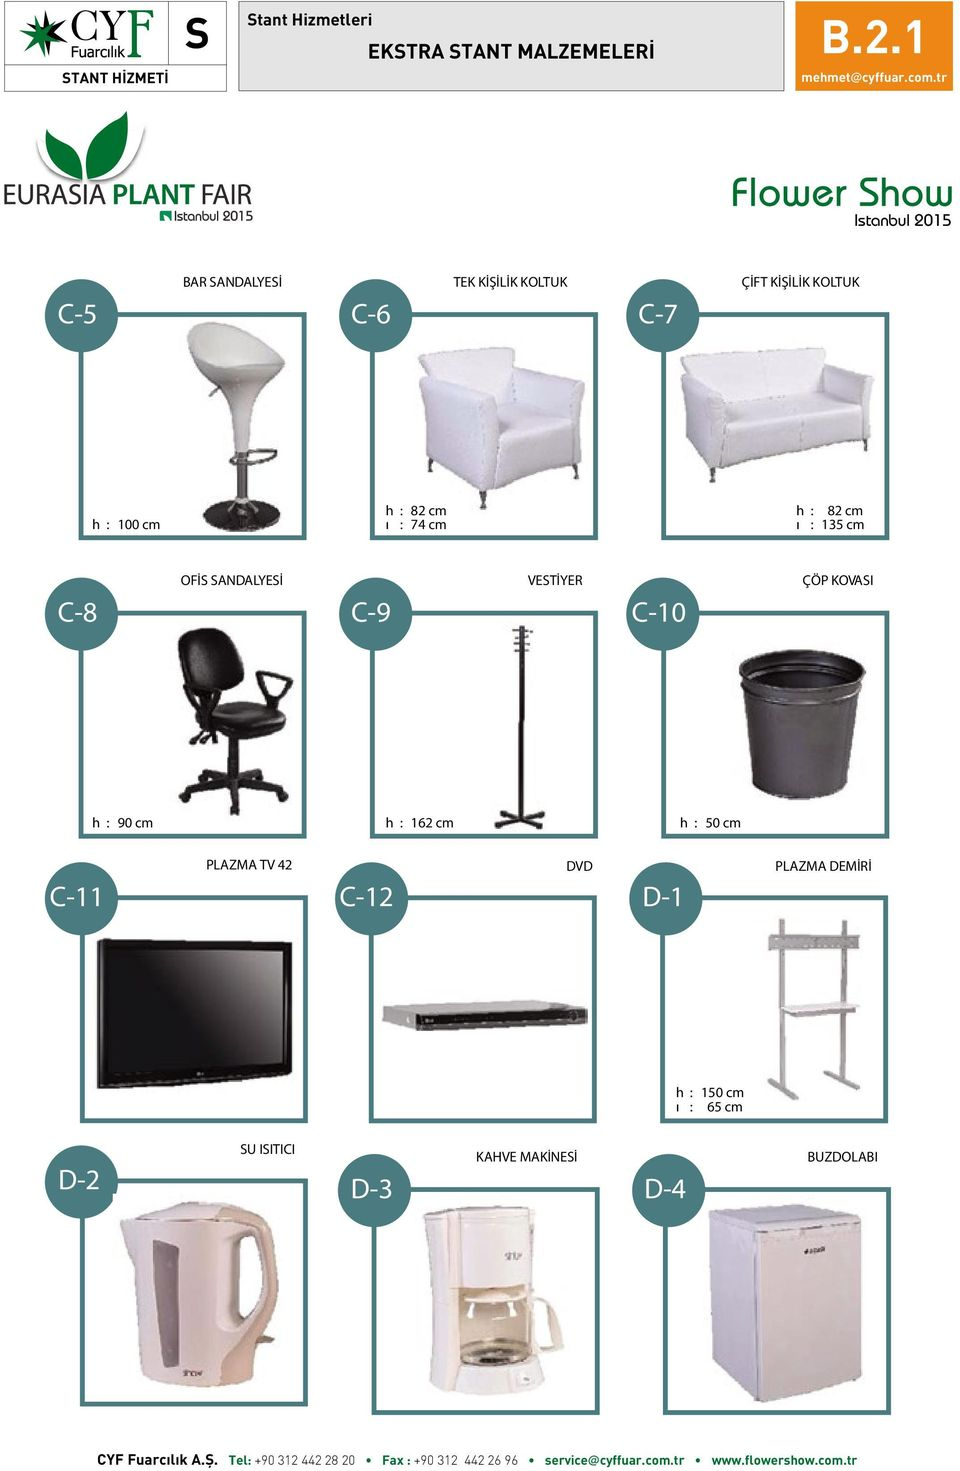 135 cm C-8 OFİS SANDALYESİ OFFICE ARMCHAIR C-9 VESTİYER CLOTH RACK C-10 ÇÖP KOVASI WASTE PAPER BASKET h : 90 cm h : 162 cm h : 50 cm C-11 PLAZMA TV 42